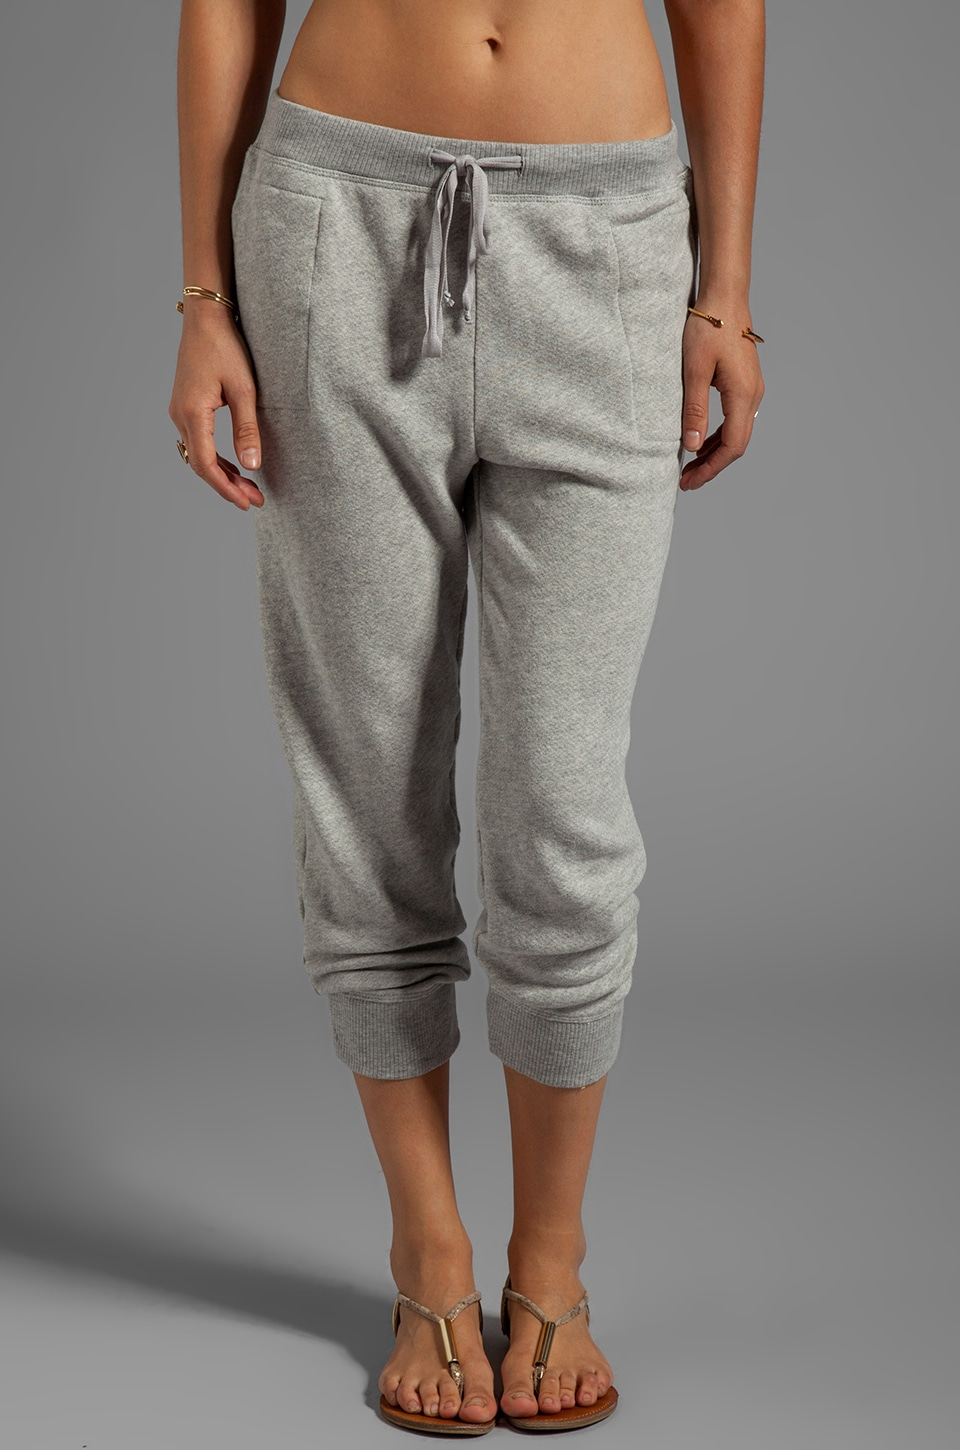 Wilt Vintage French Terry Slouchy Sweatpant in Grey Heather